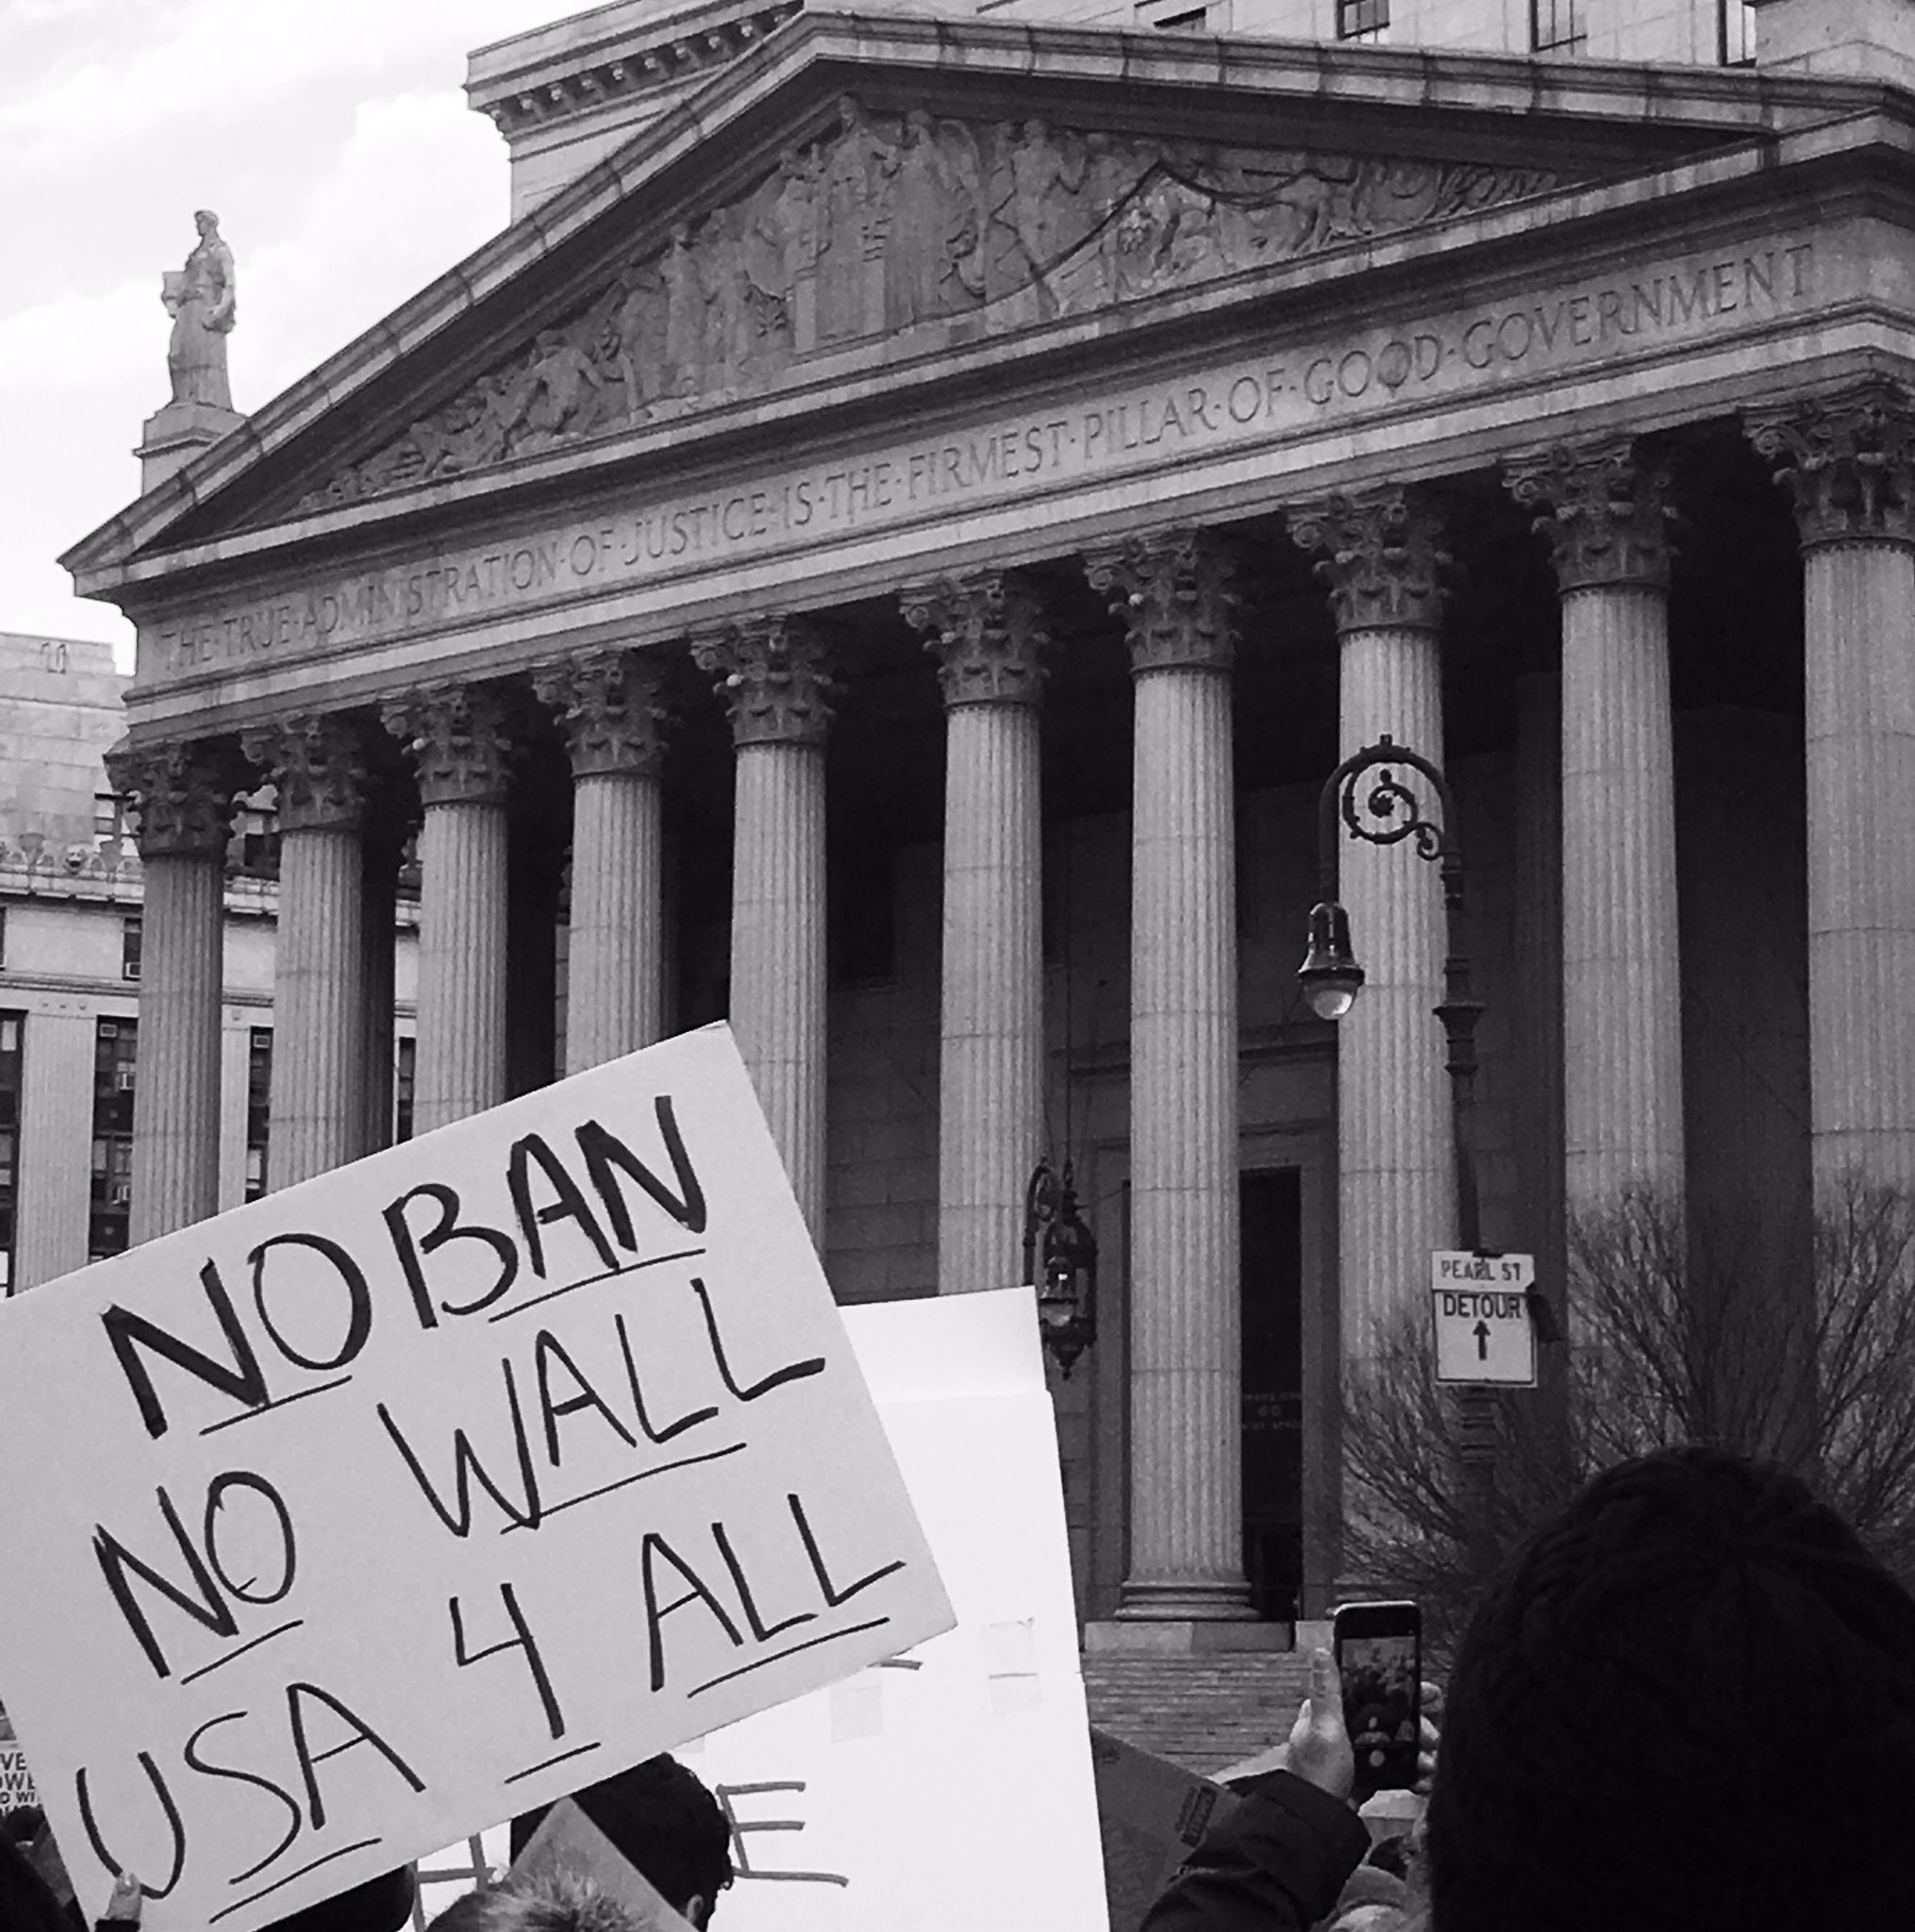 """The true administration of justice is the firmest pillar of good government.""  #nobannowall #refugeeswelcome #civilrights https://t.co/5GEFPfiylT"